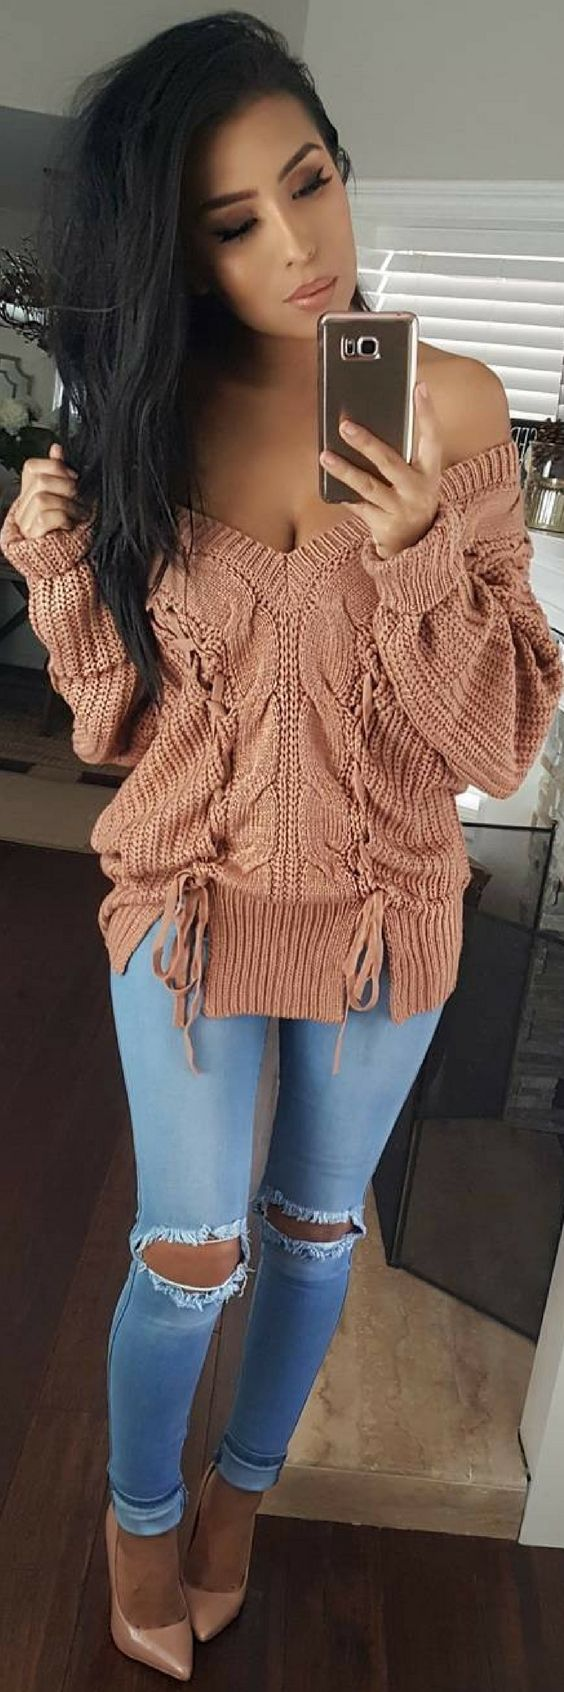 How To Style An Amazing Sweater - Look By Monica Gabriela http://ecstasymodels.blog/2017/10/17/amazing-sweater-look-monica-gabriela/